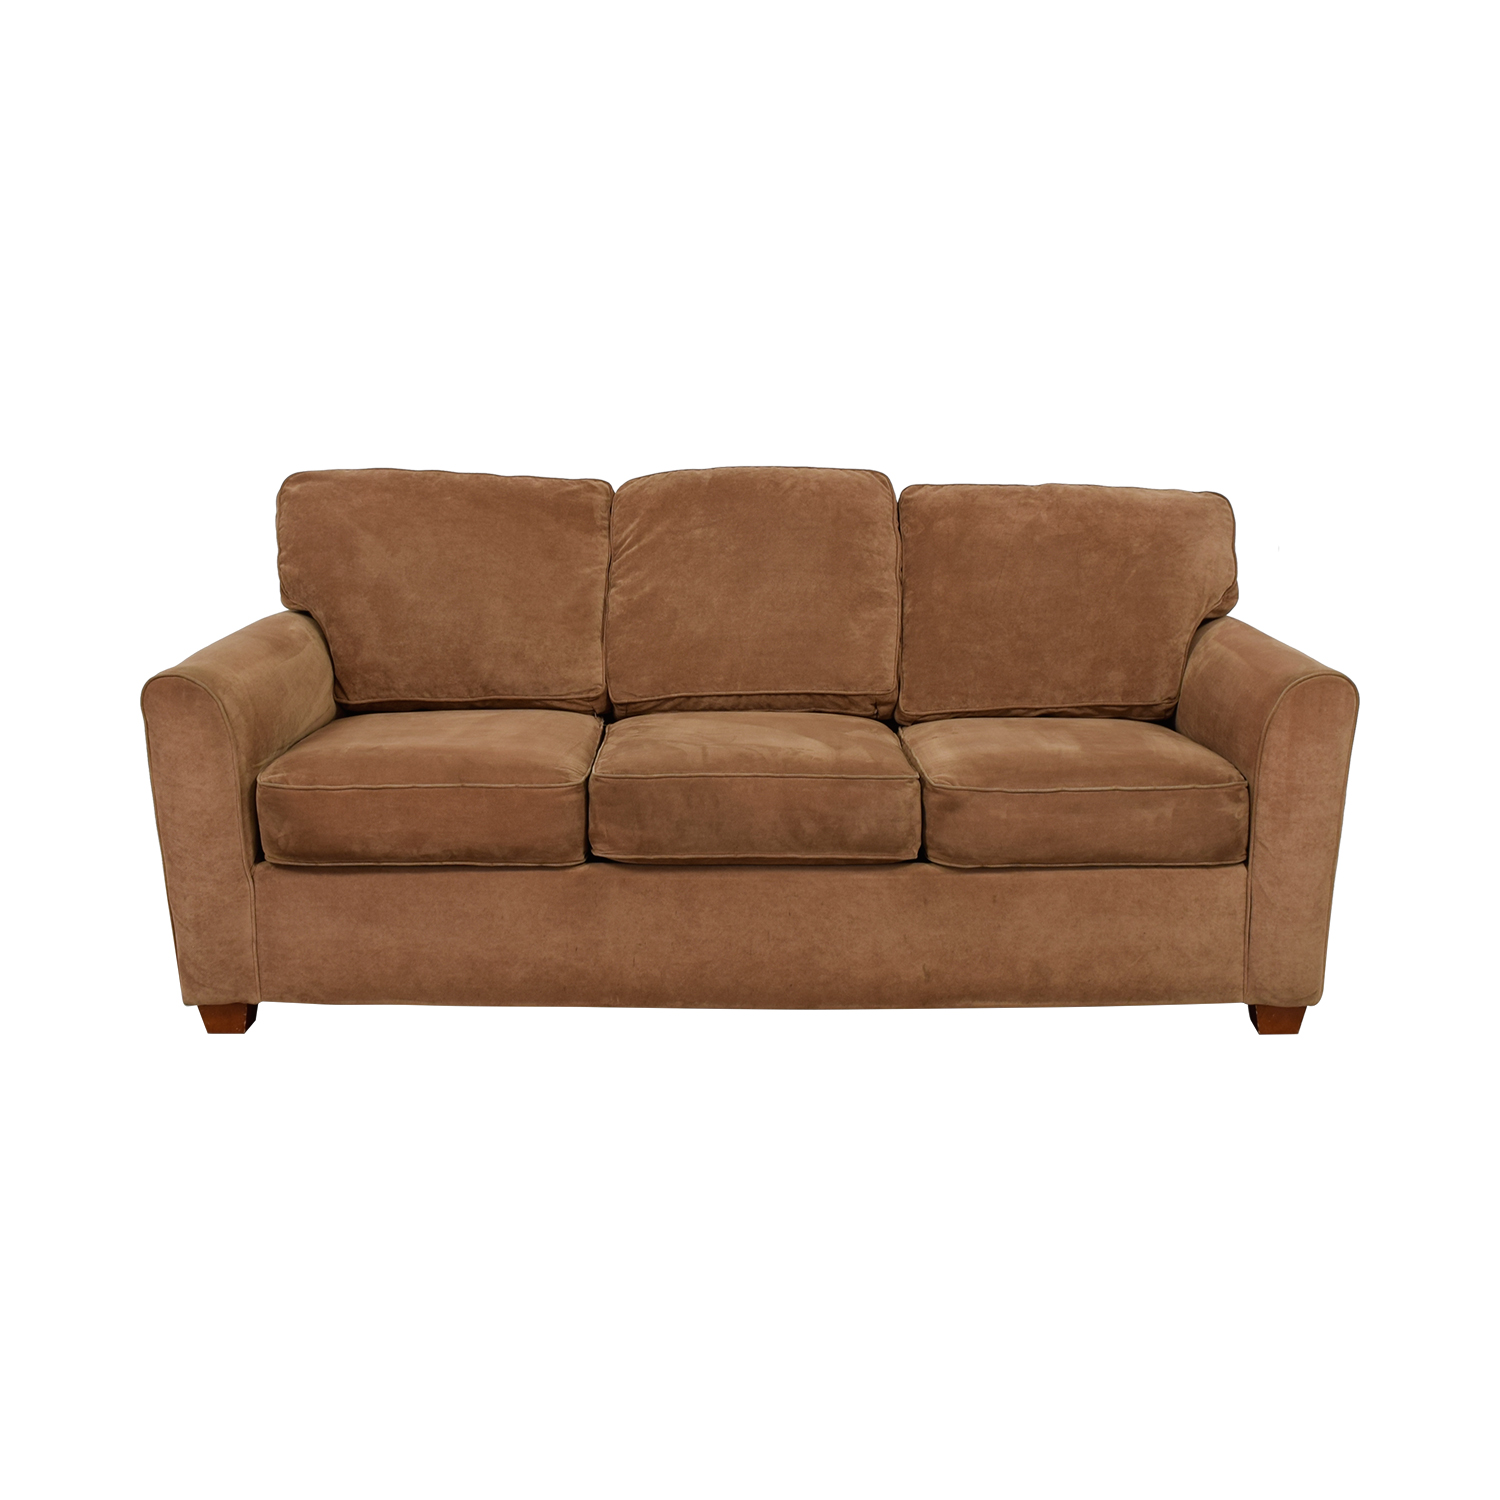 La Z Boy La Z Boy Tan Three Cushion Couch